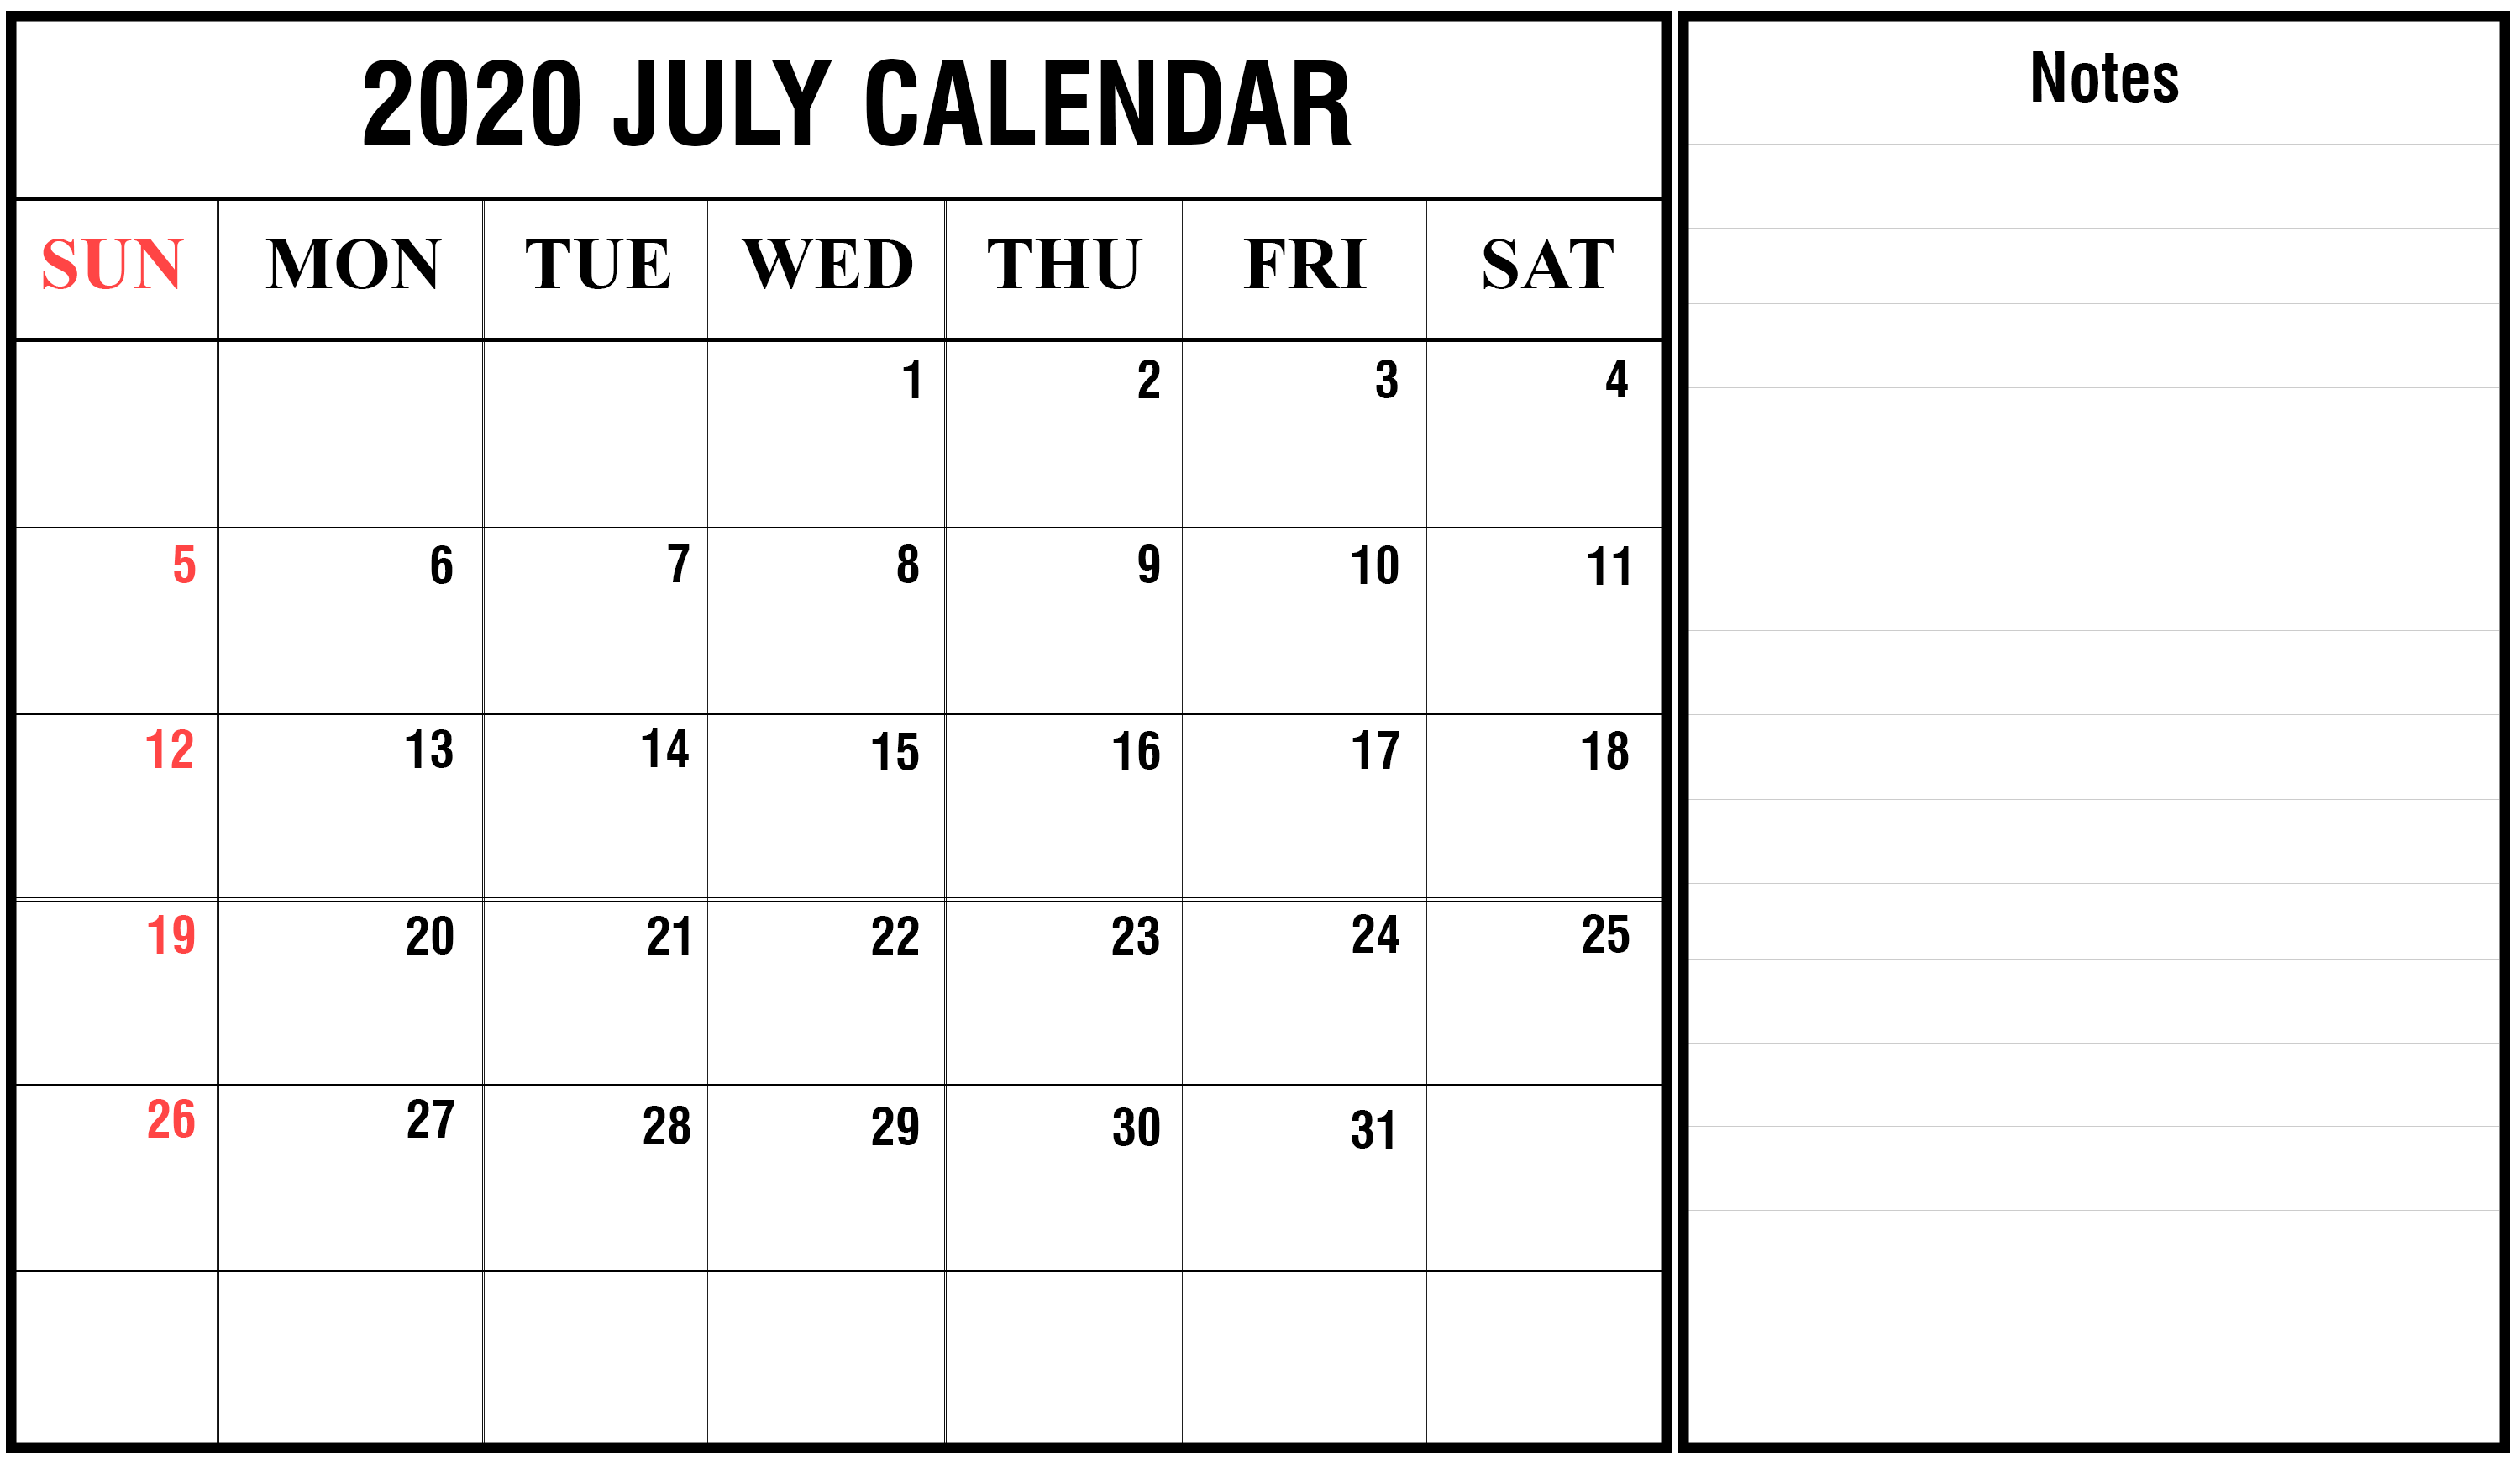 2020 July Calendar with Notes